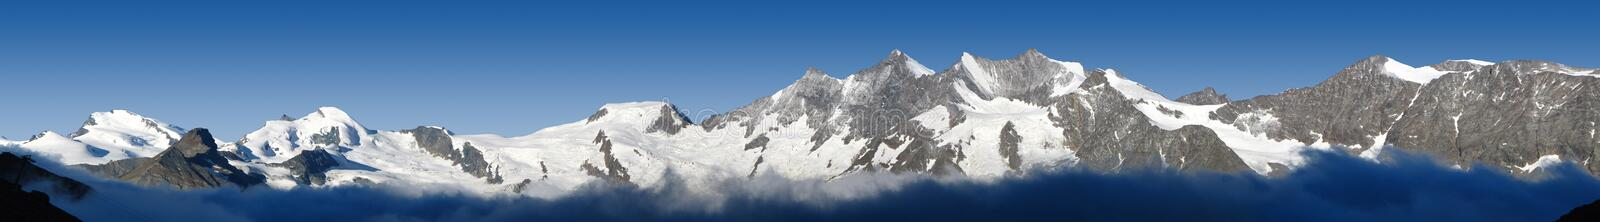 Panorama of mountains in Valais, Switzerland stock images